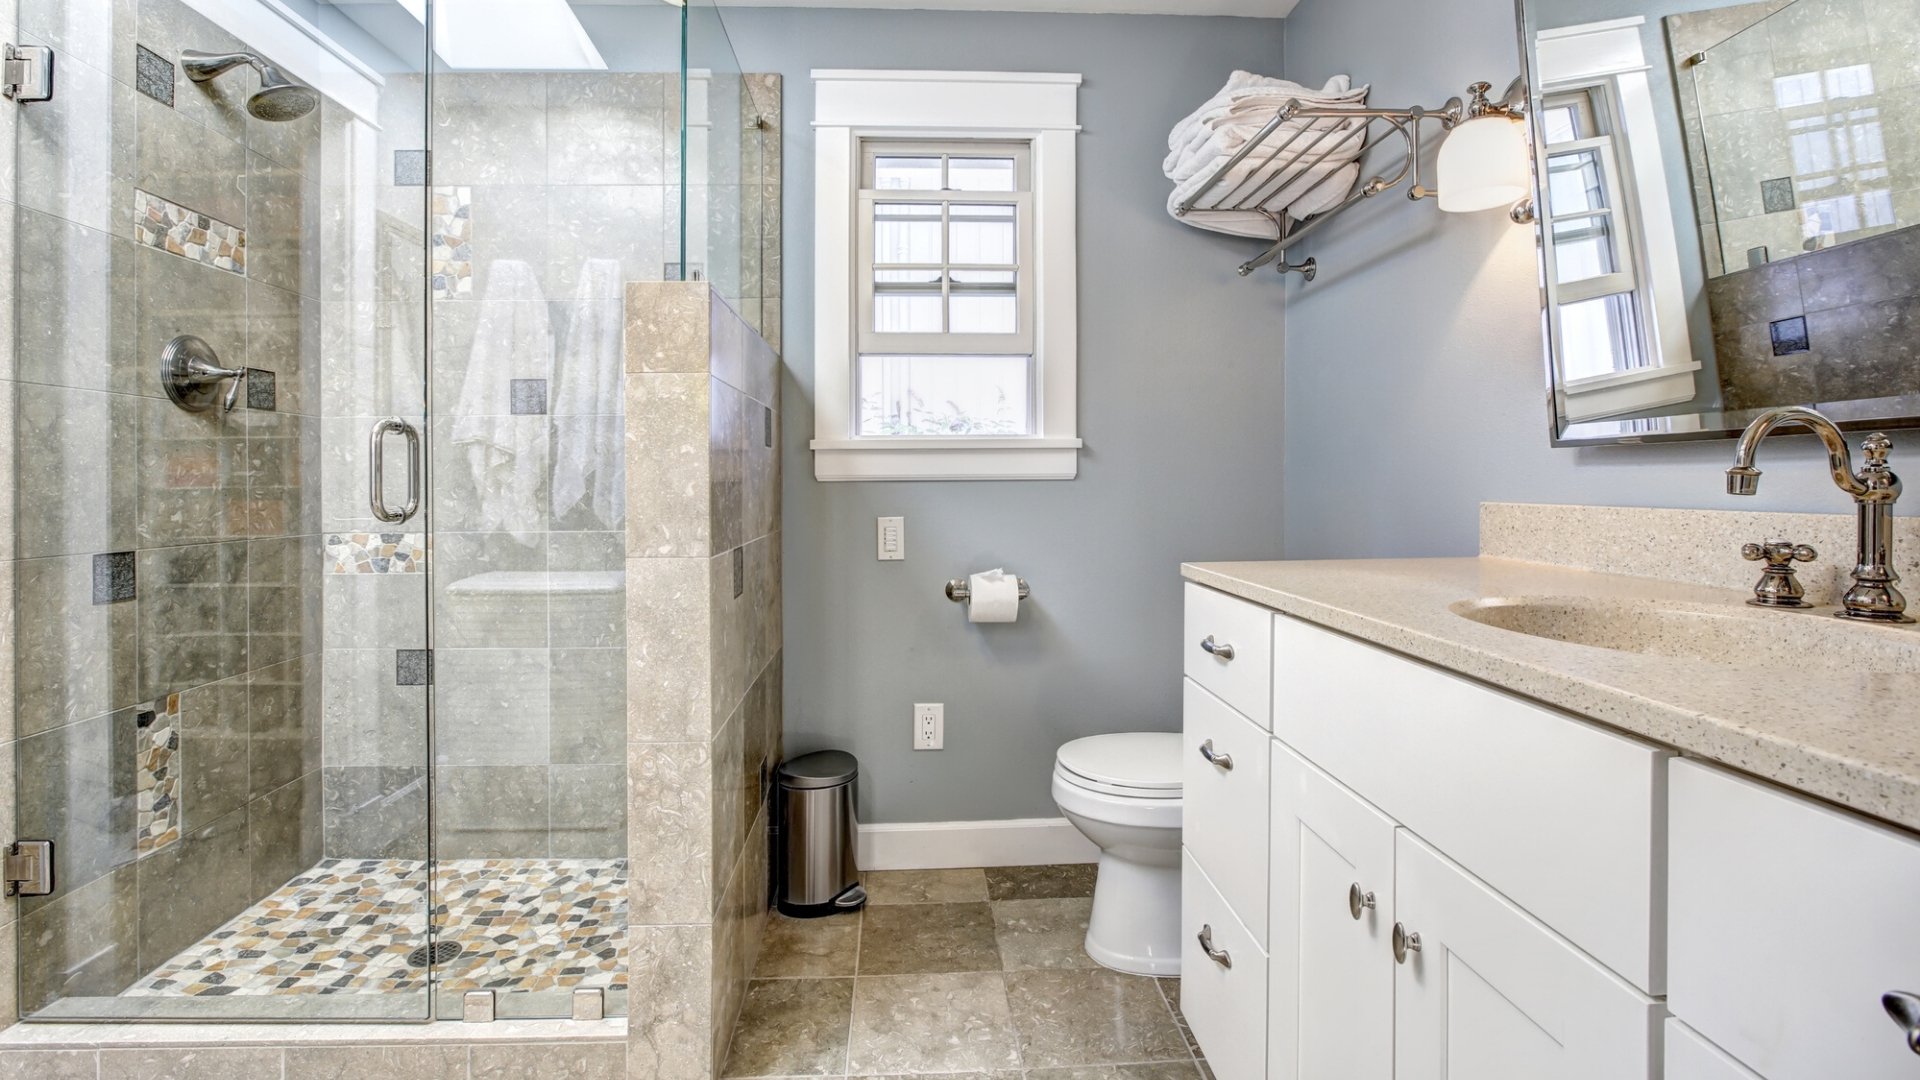 mcdermott remodeling how to make small bathroom luxurious